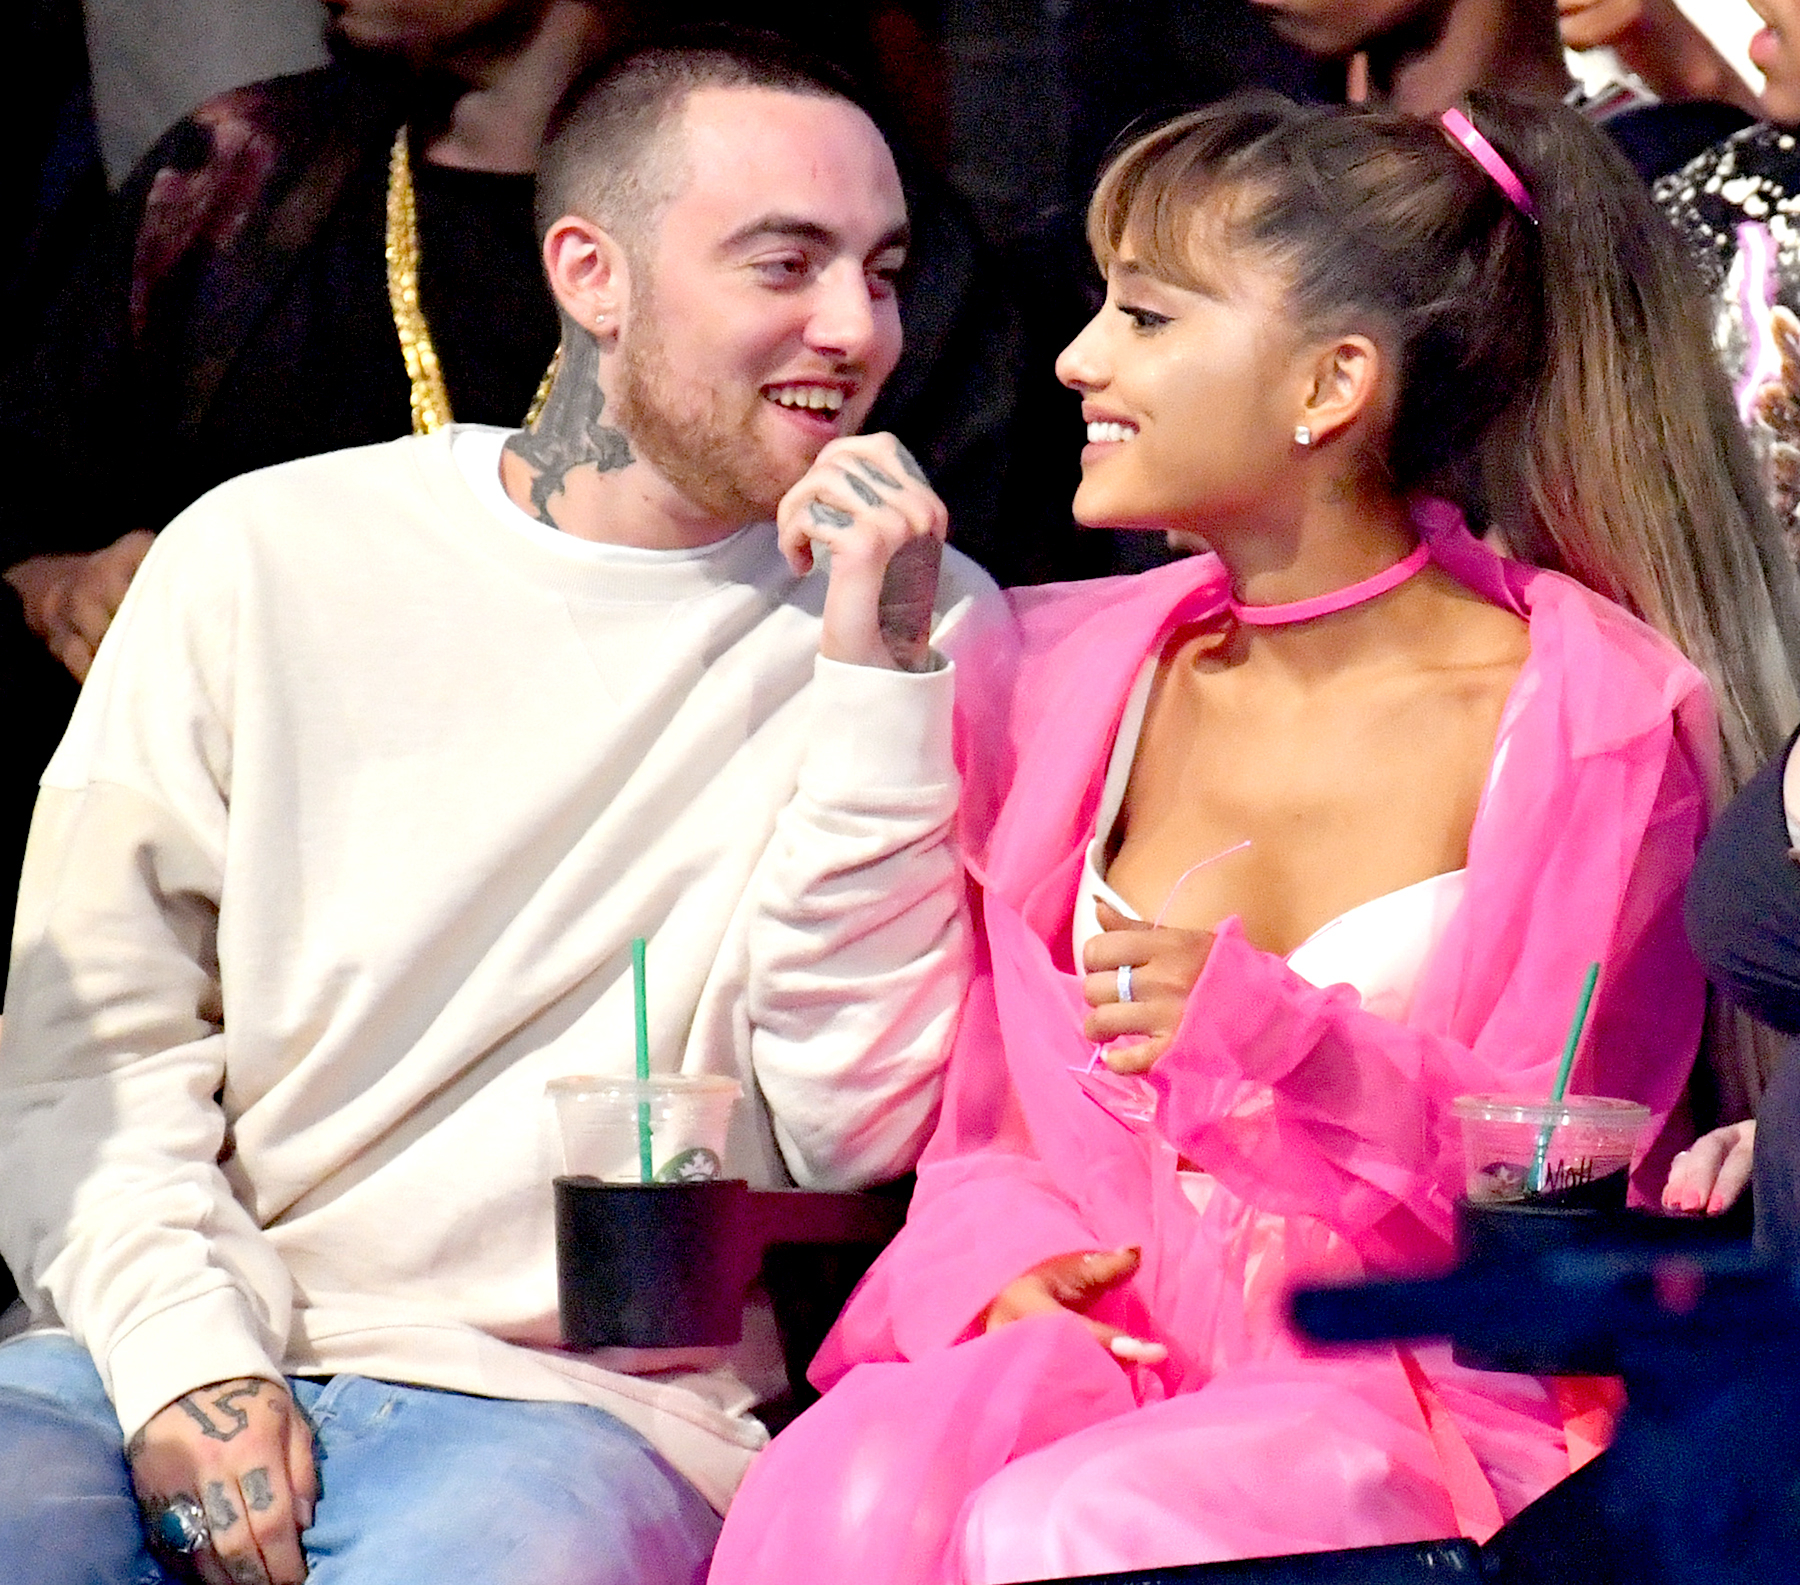 Mac Miller and Ariana Grande attend the 2016 MTV Video Music Awards at Madison Square Garden on August 28, 2016 in New York City.